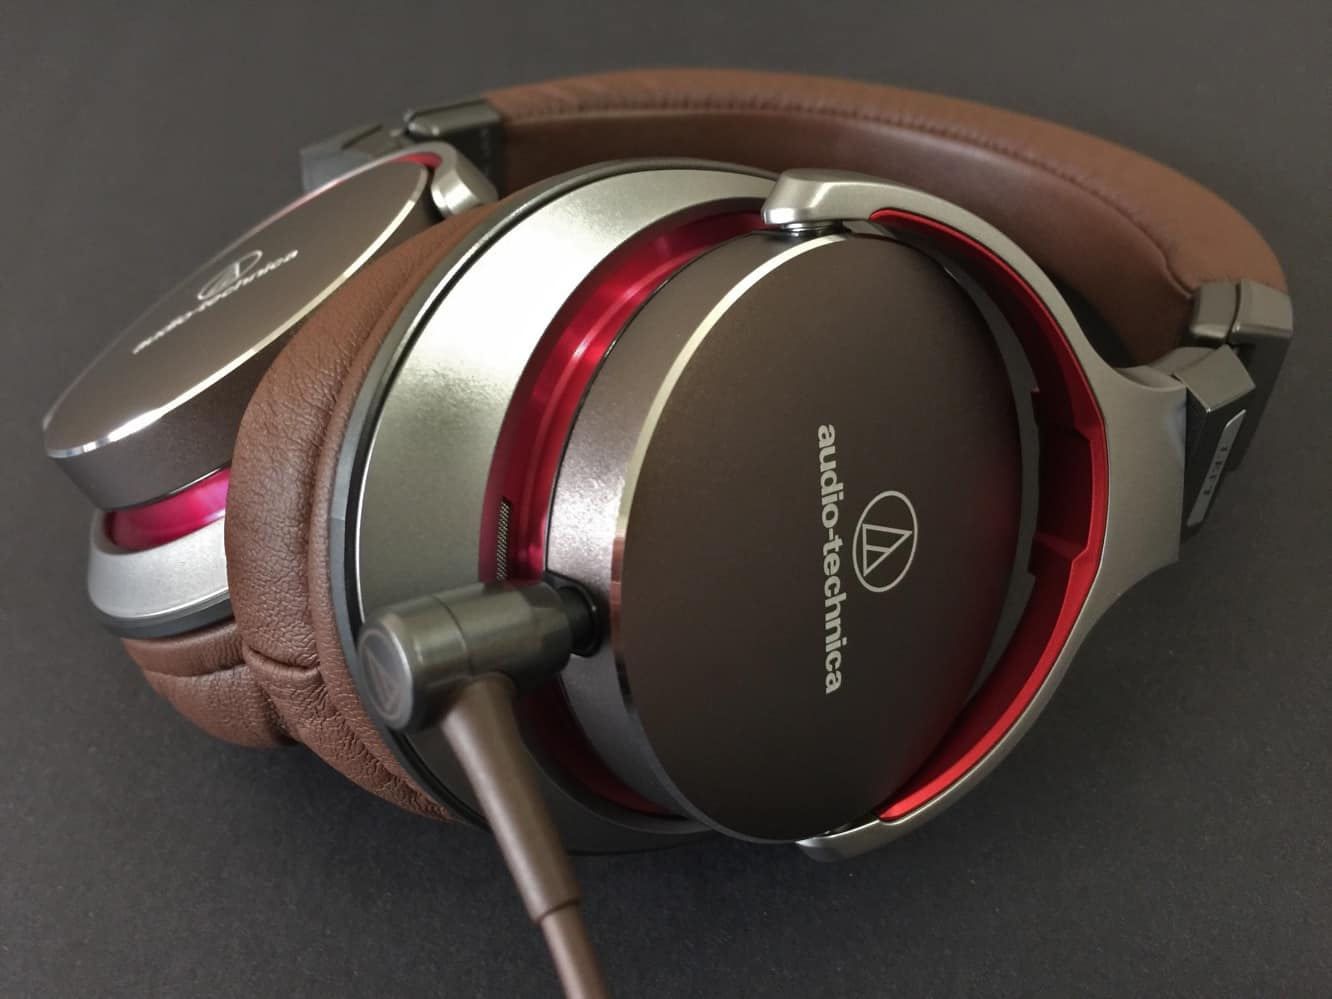 Review: Audio-Technica ATH-MSR7 SonicPro Over-Ear Headphones